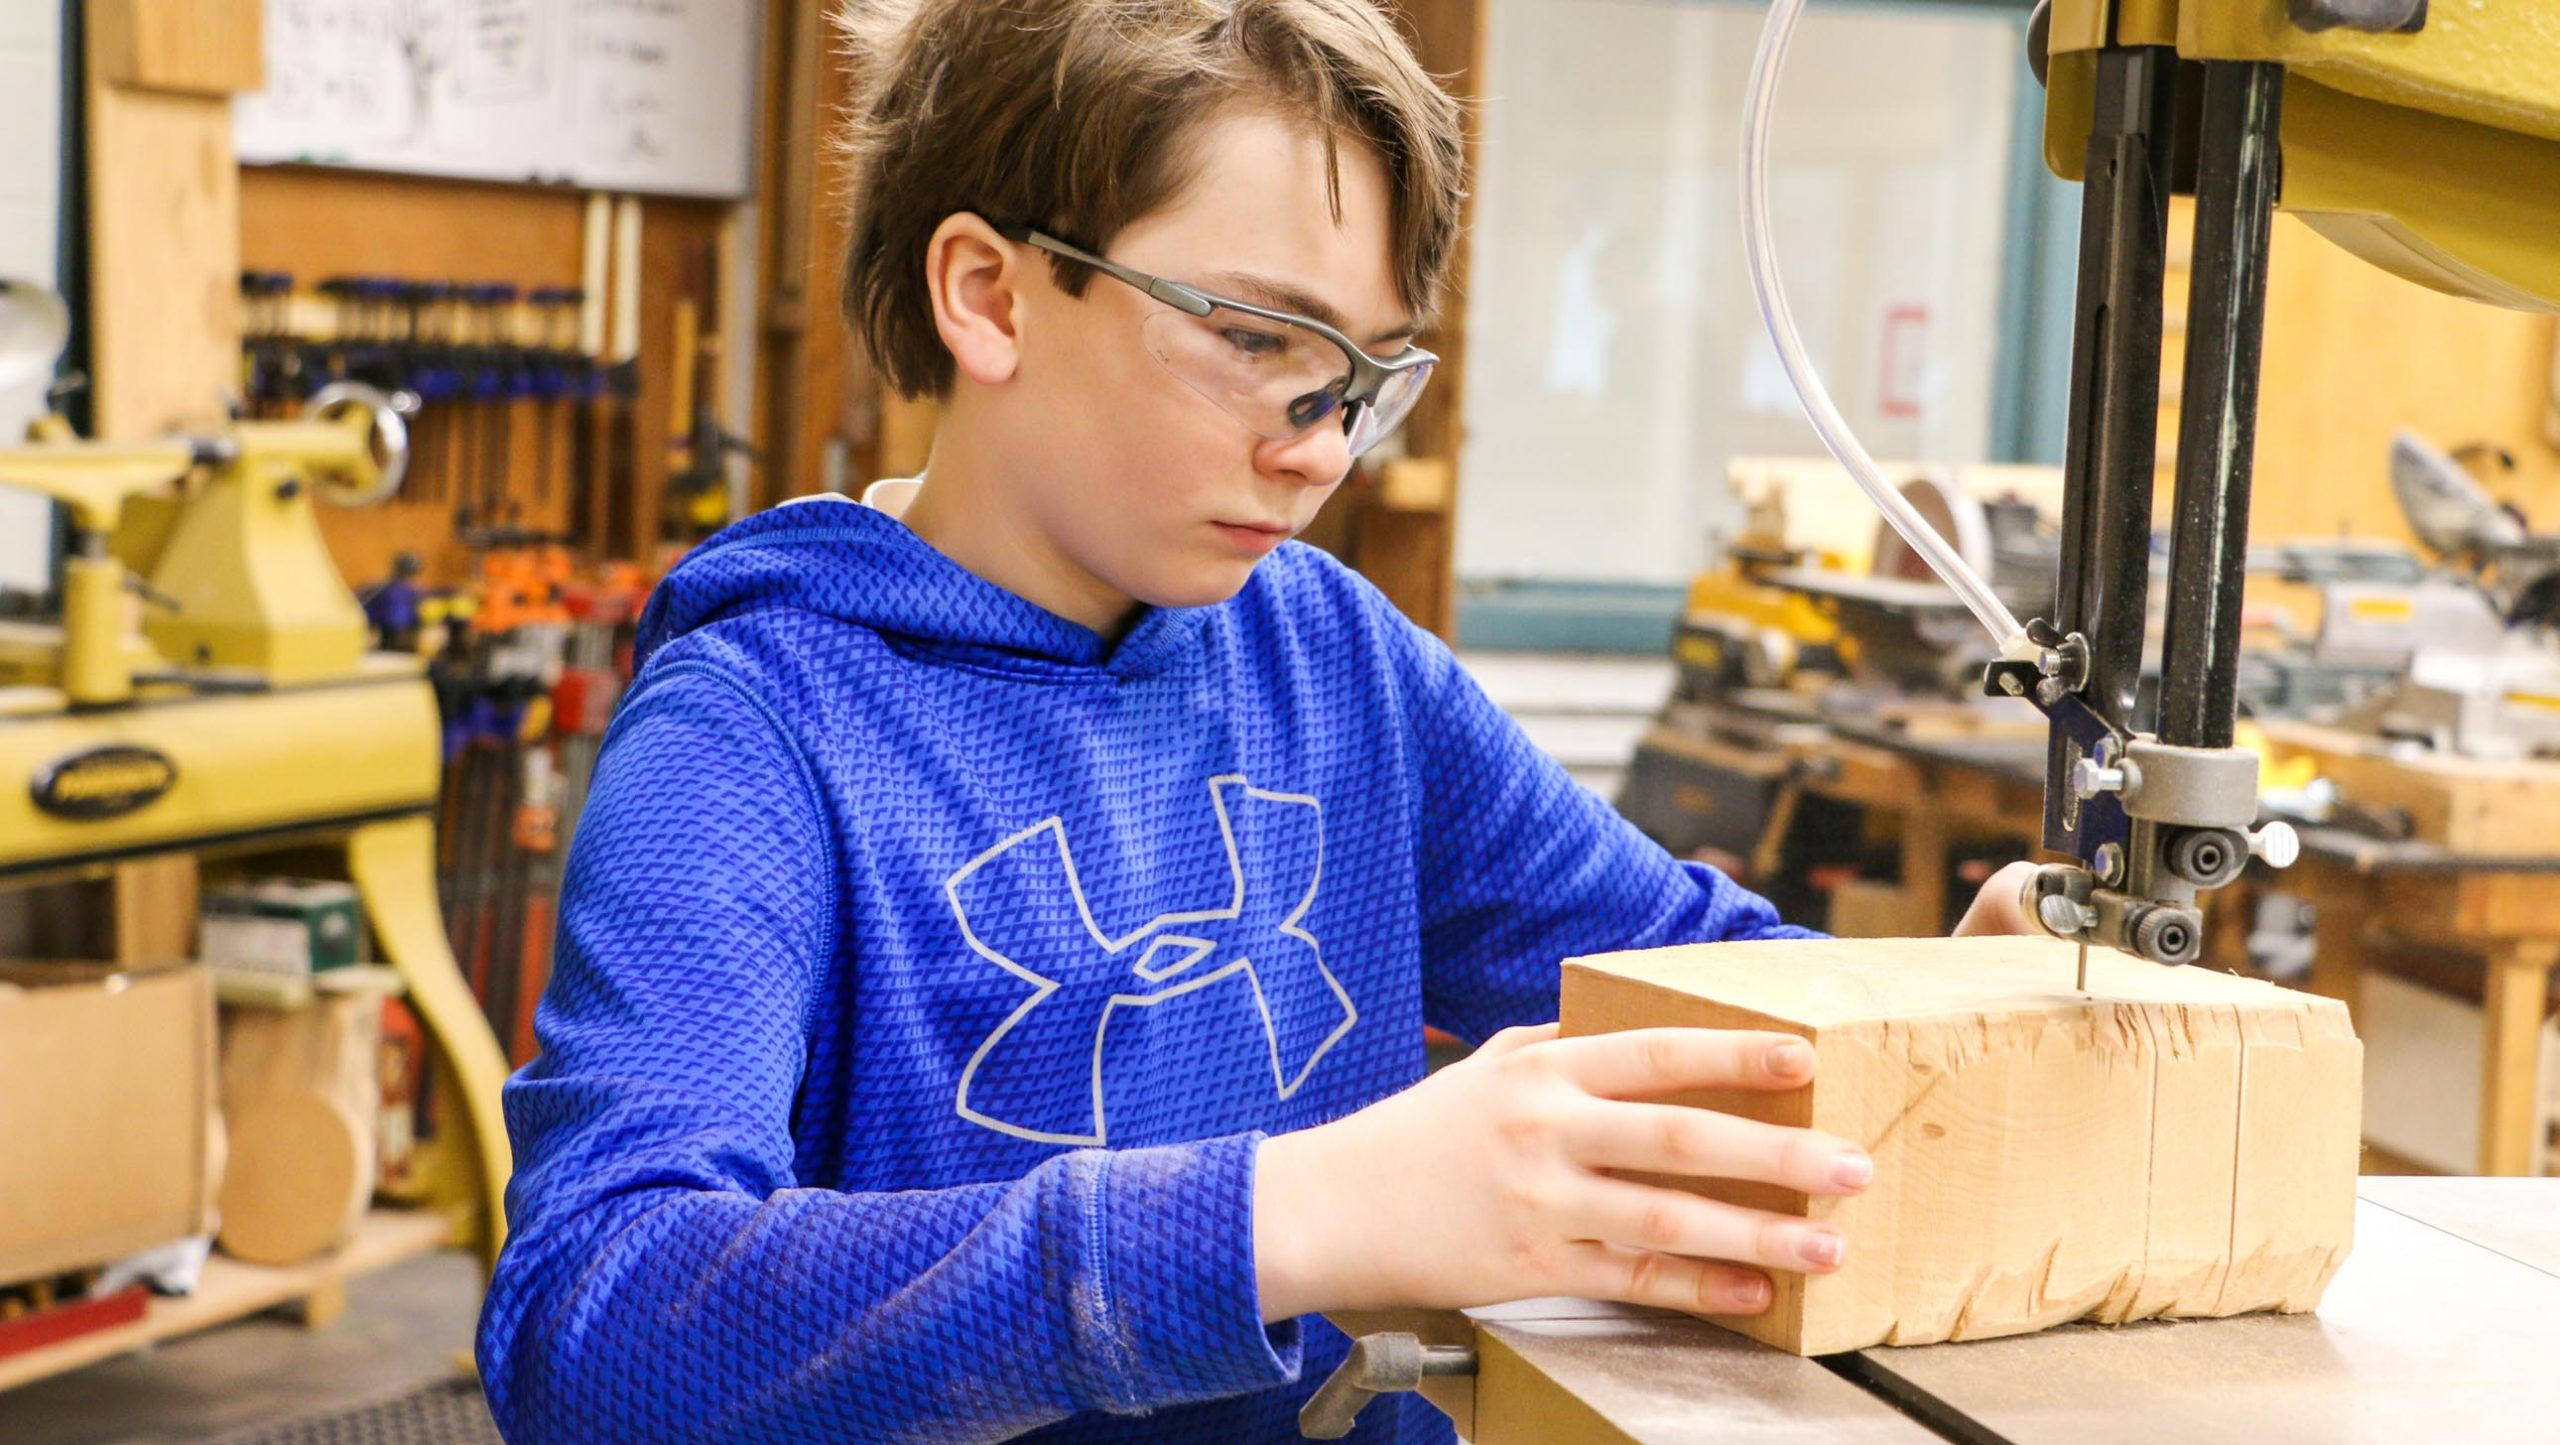 A student cutting a piece of wood using a band saw.